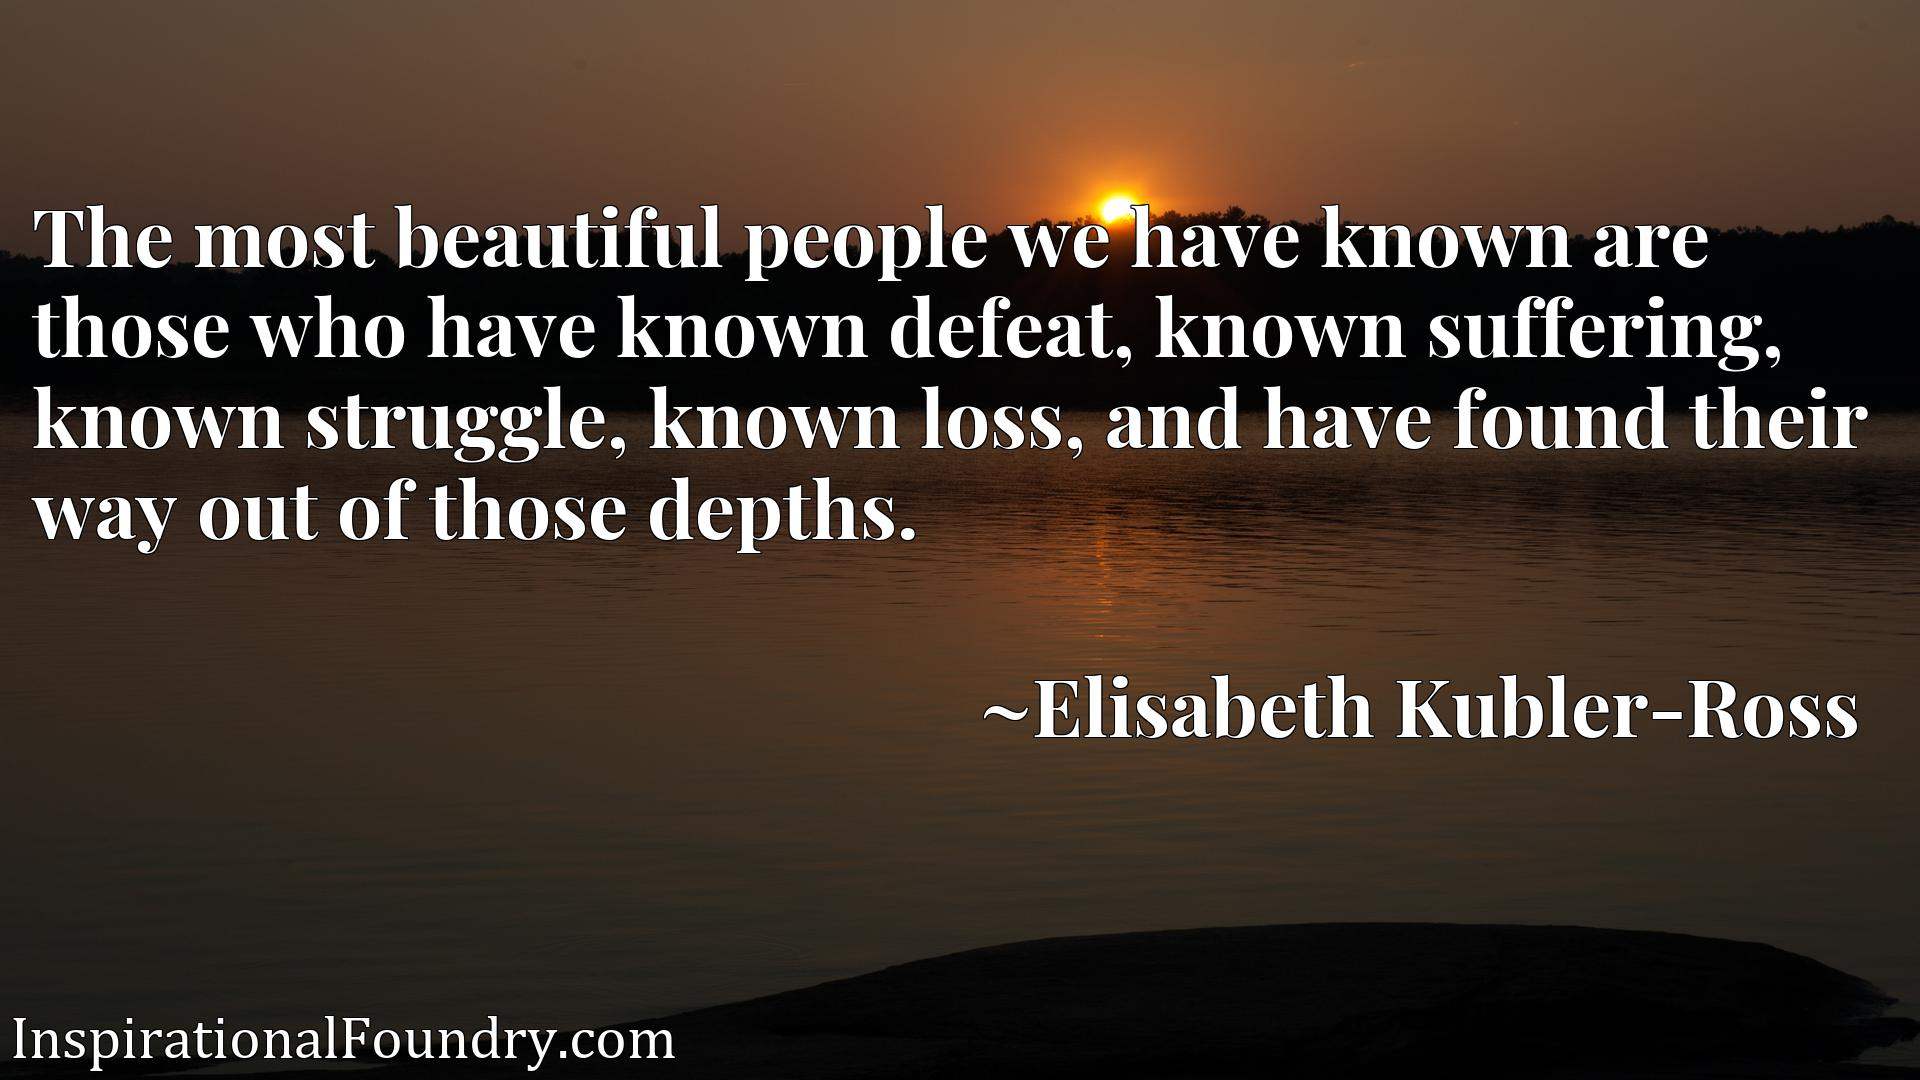 The most beautiful people we have known are those who have known defeat, known suffering, known struggle, known loss, and have found their way out of those depths.